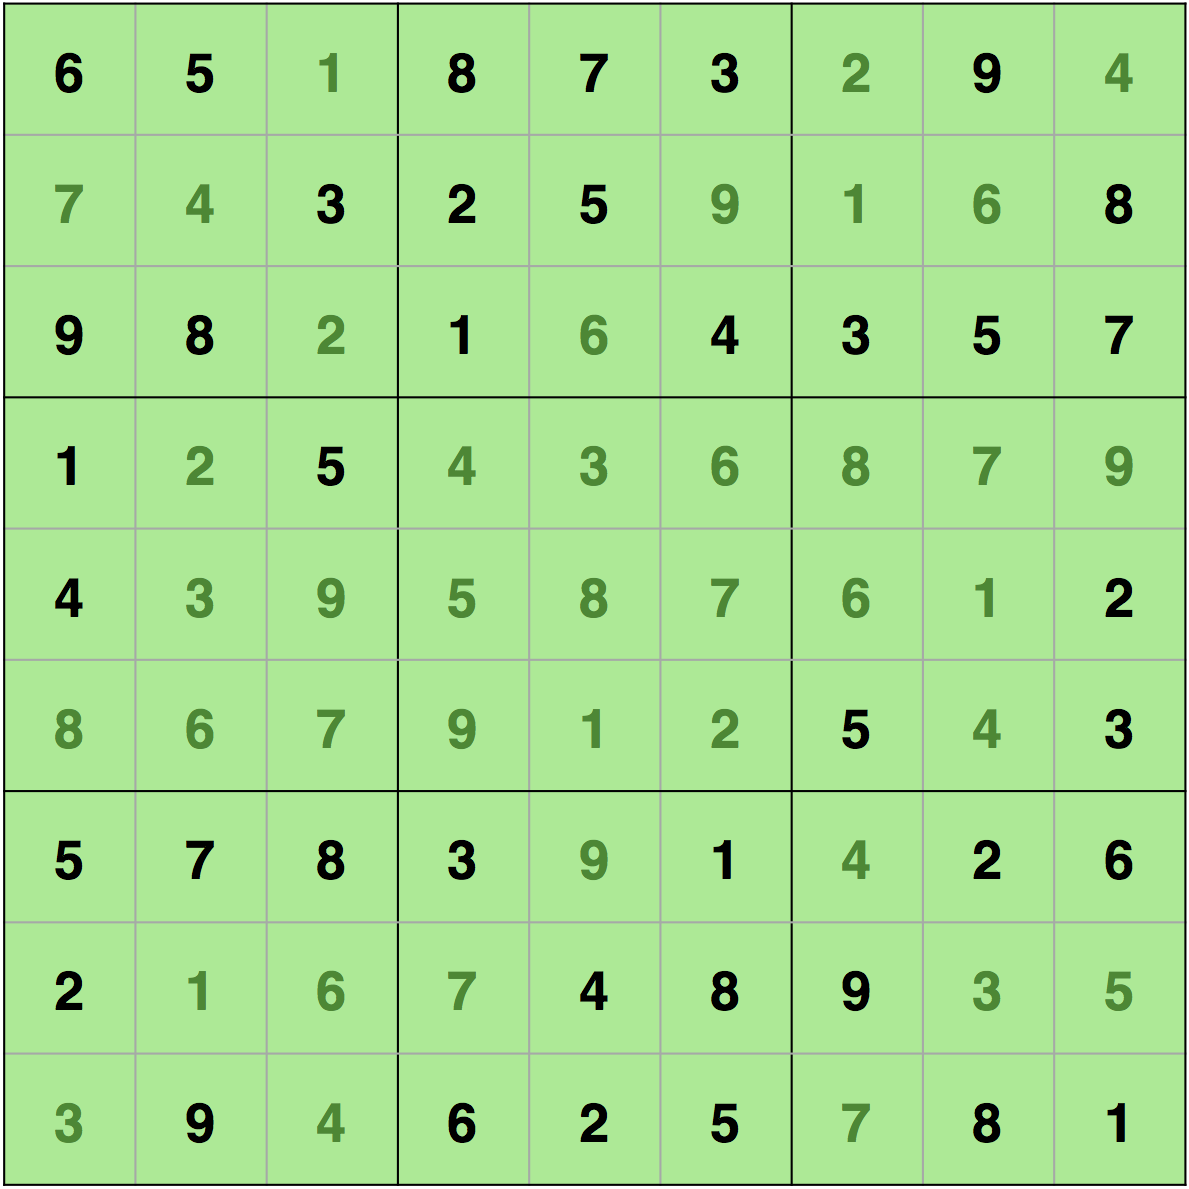 Sudoku solved using backtracking